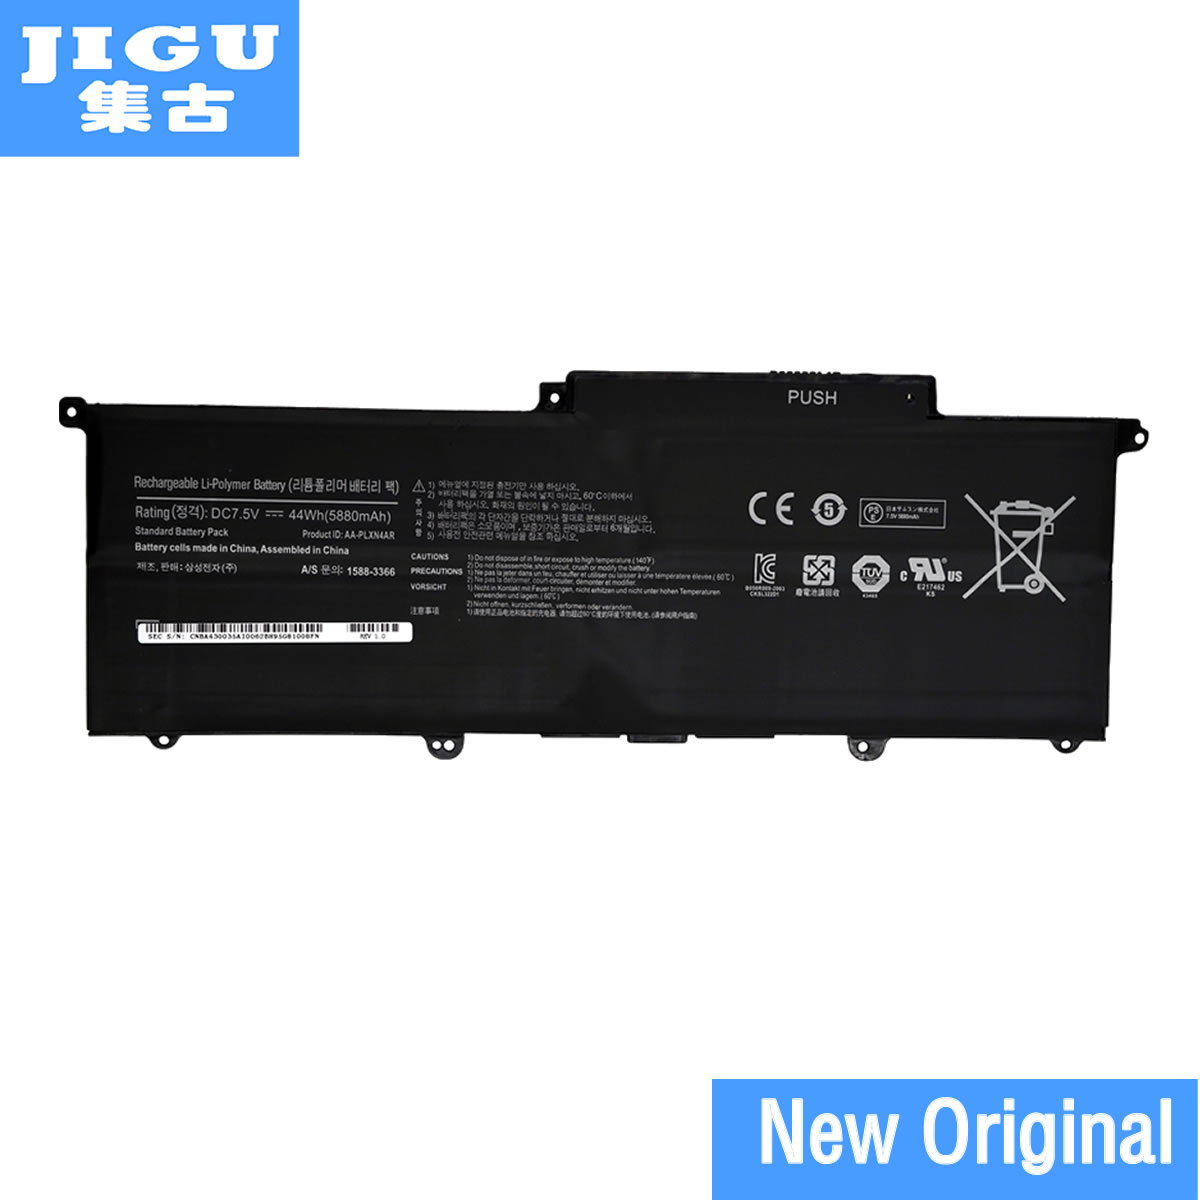 JIGU AA-PLXN4AR Original Laptop Battery For SAMSUNG For Ultrabook 900X3C 900X3D 900X3E NP900X3C NP900X3D NP900X3E 7.5V 44WH new for samsung np900x3b np900x3c np900x3d np900x3e 900x3b 900x3c 900x3d 900x3e keyboard backlit portugal no frame big enter